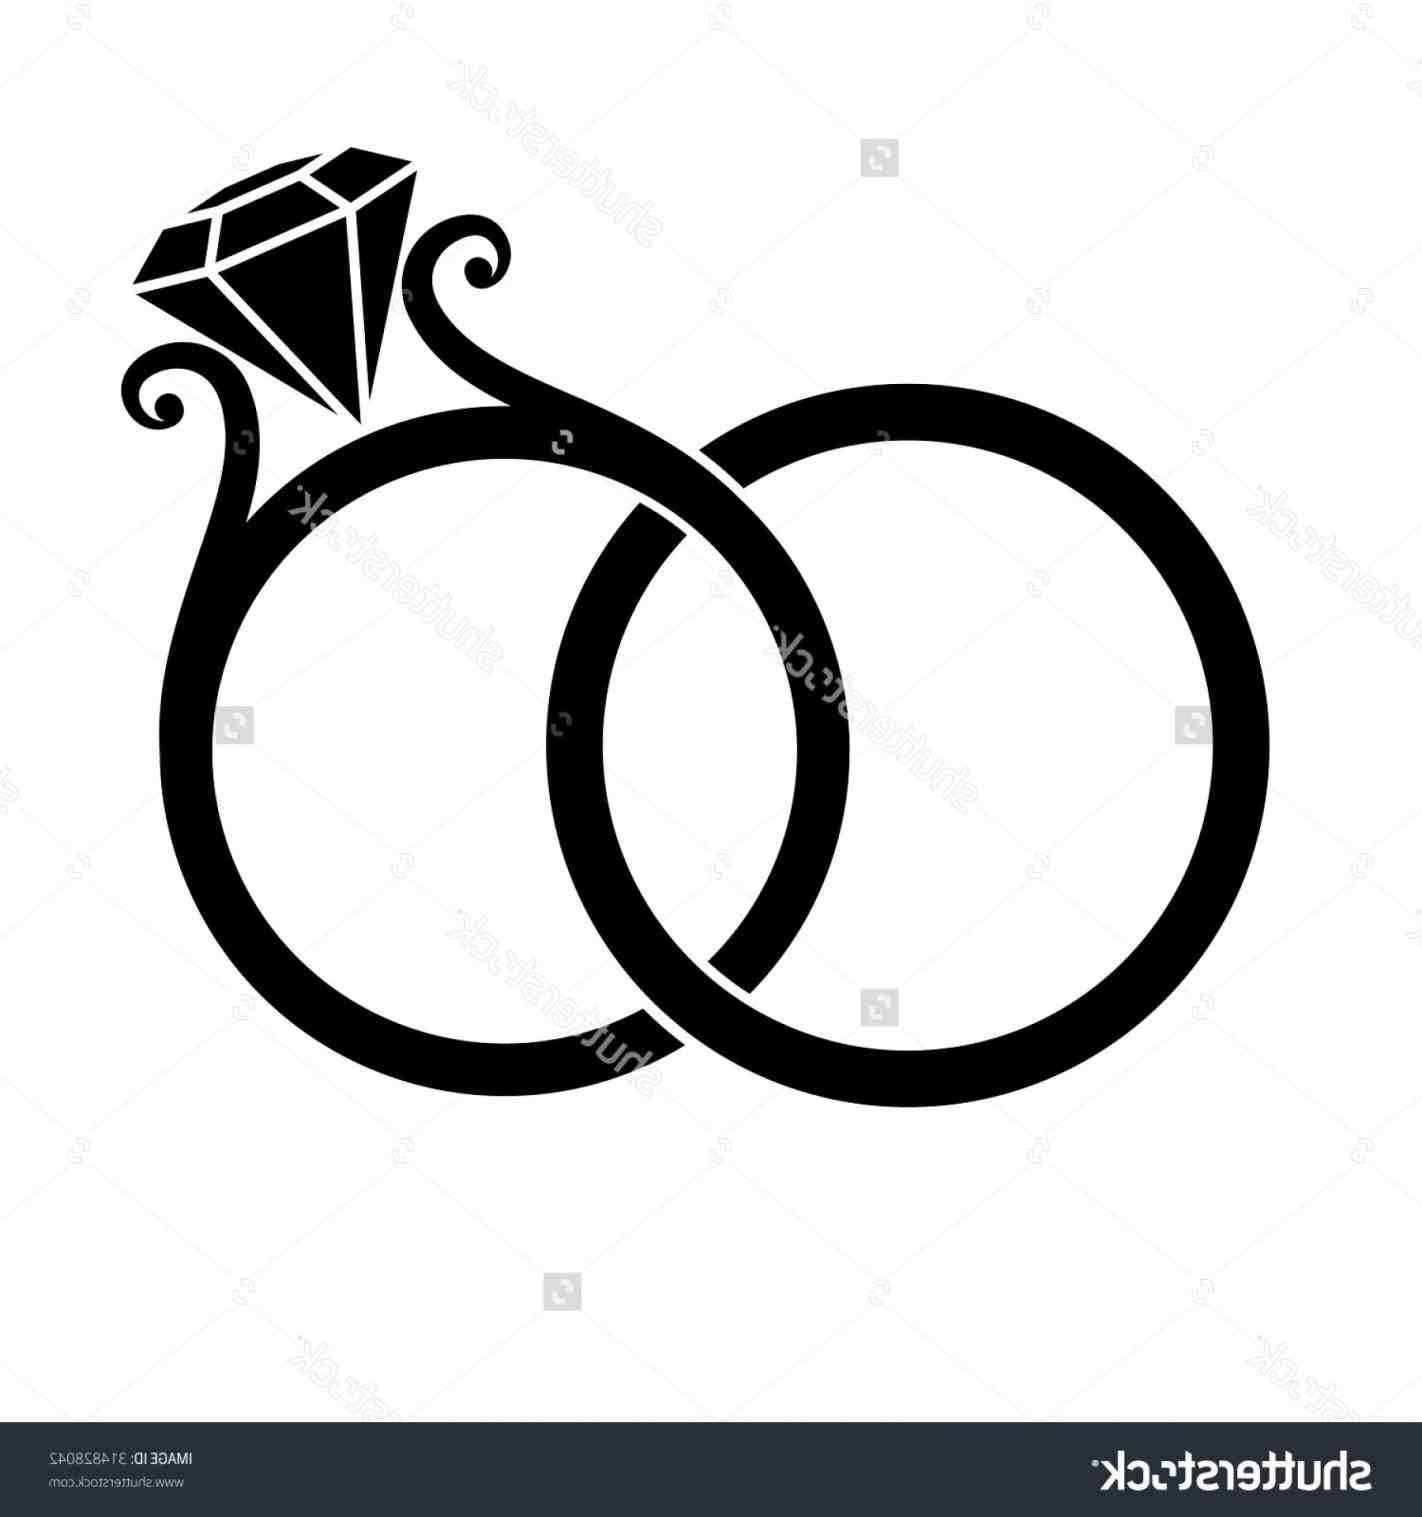 Suggested Sites Hint Wedbridal Site Clean Commerce Immediately This Instant Used Online Online Store Very Cheap Quality Online Sales Wedding Ring Clipart Bride And Groom Silhouette Wedding Silhouette